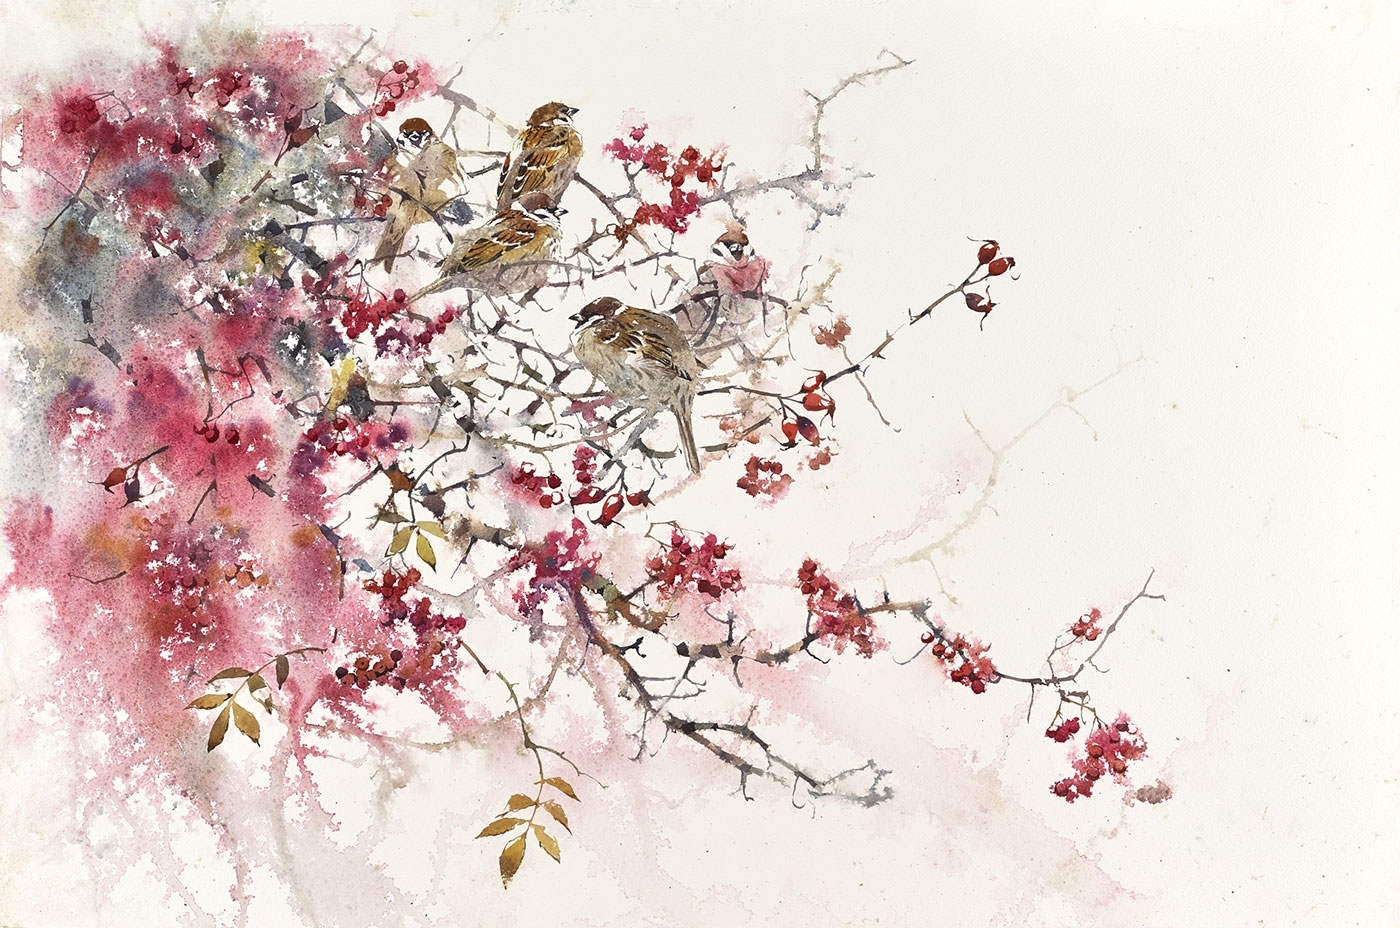 Tree Sparrows in Autumn hedgerow, watercolour on paper, 92 x 127 cm